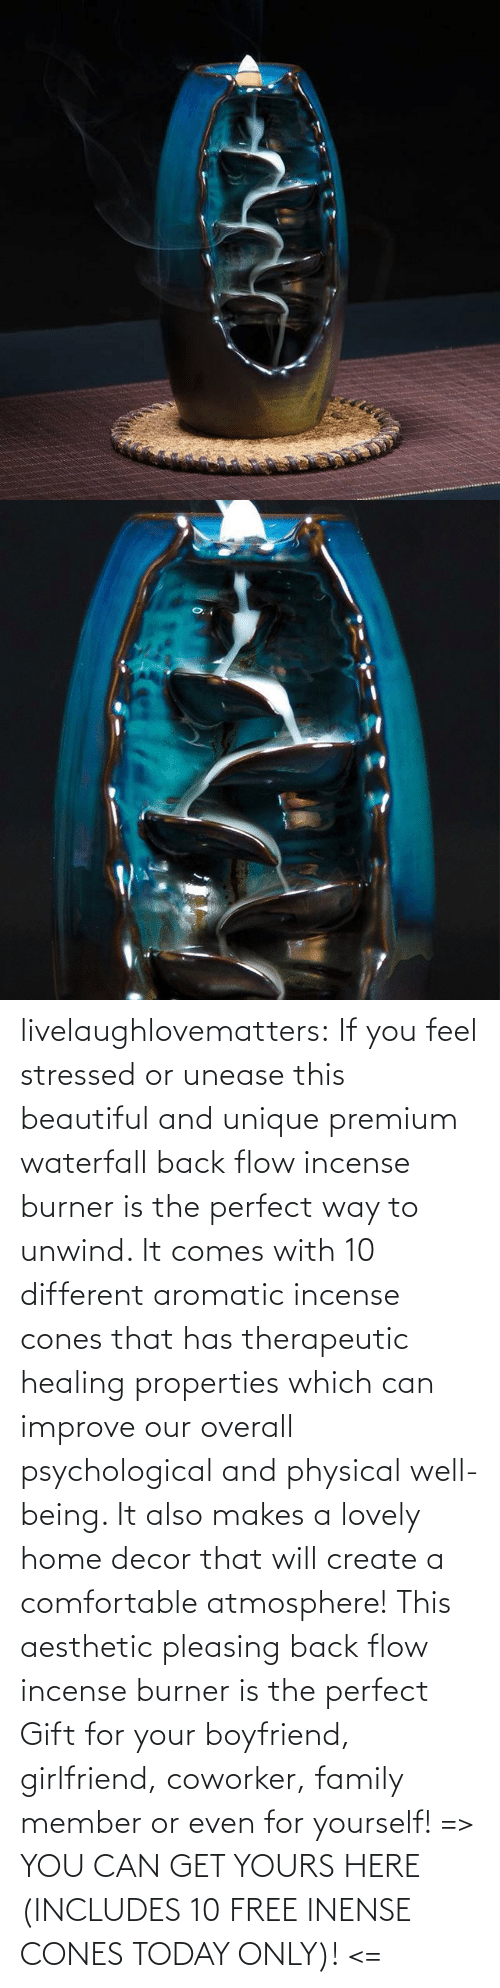 Can Get: livelaughlovematters: If you feel stressed or unease this beautiful and unique premium waterfall back flow incense burner is the perfect way to unwind. It comes with 10 different aromatic incense cones that has therapeutic healing properties which can improve our overall psychological and physical well-being. It also makes a lovely home decor that will create a comfortable atmosphere! This aesthetic pleasing back flow incense burner is the perfect Gift for your boyfriend, girlfriend, coworker, family member or even for yourself! => YOU CAN GET YOURS HERE (INCLUDES 10 FREE INENSE CONES TODAY ONLY)! <=